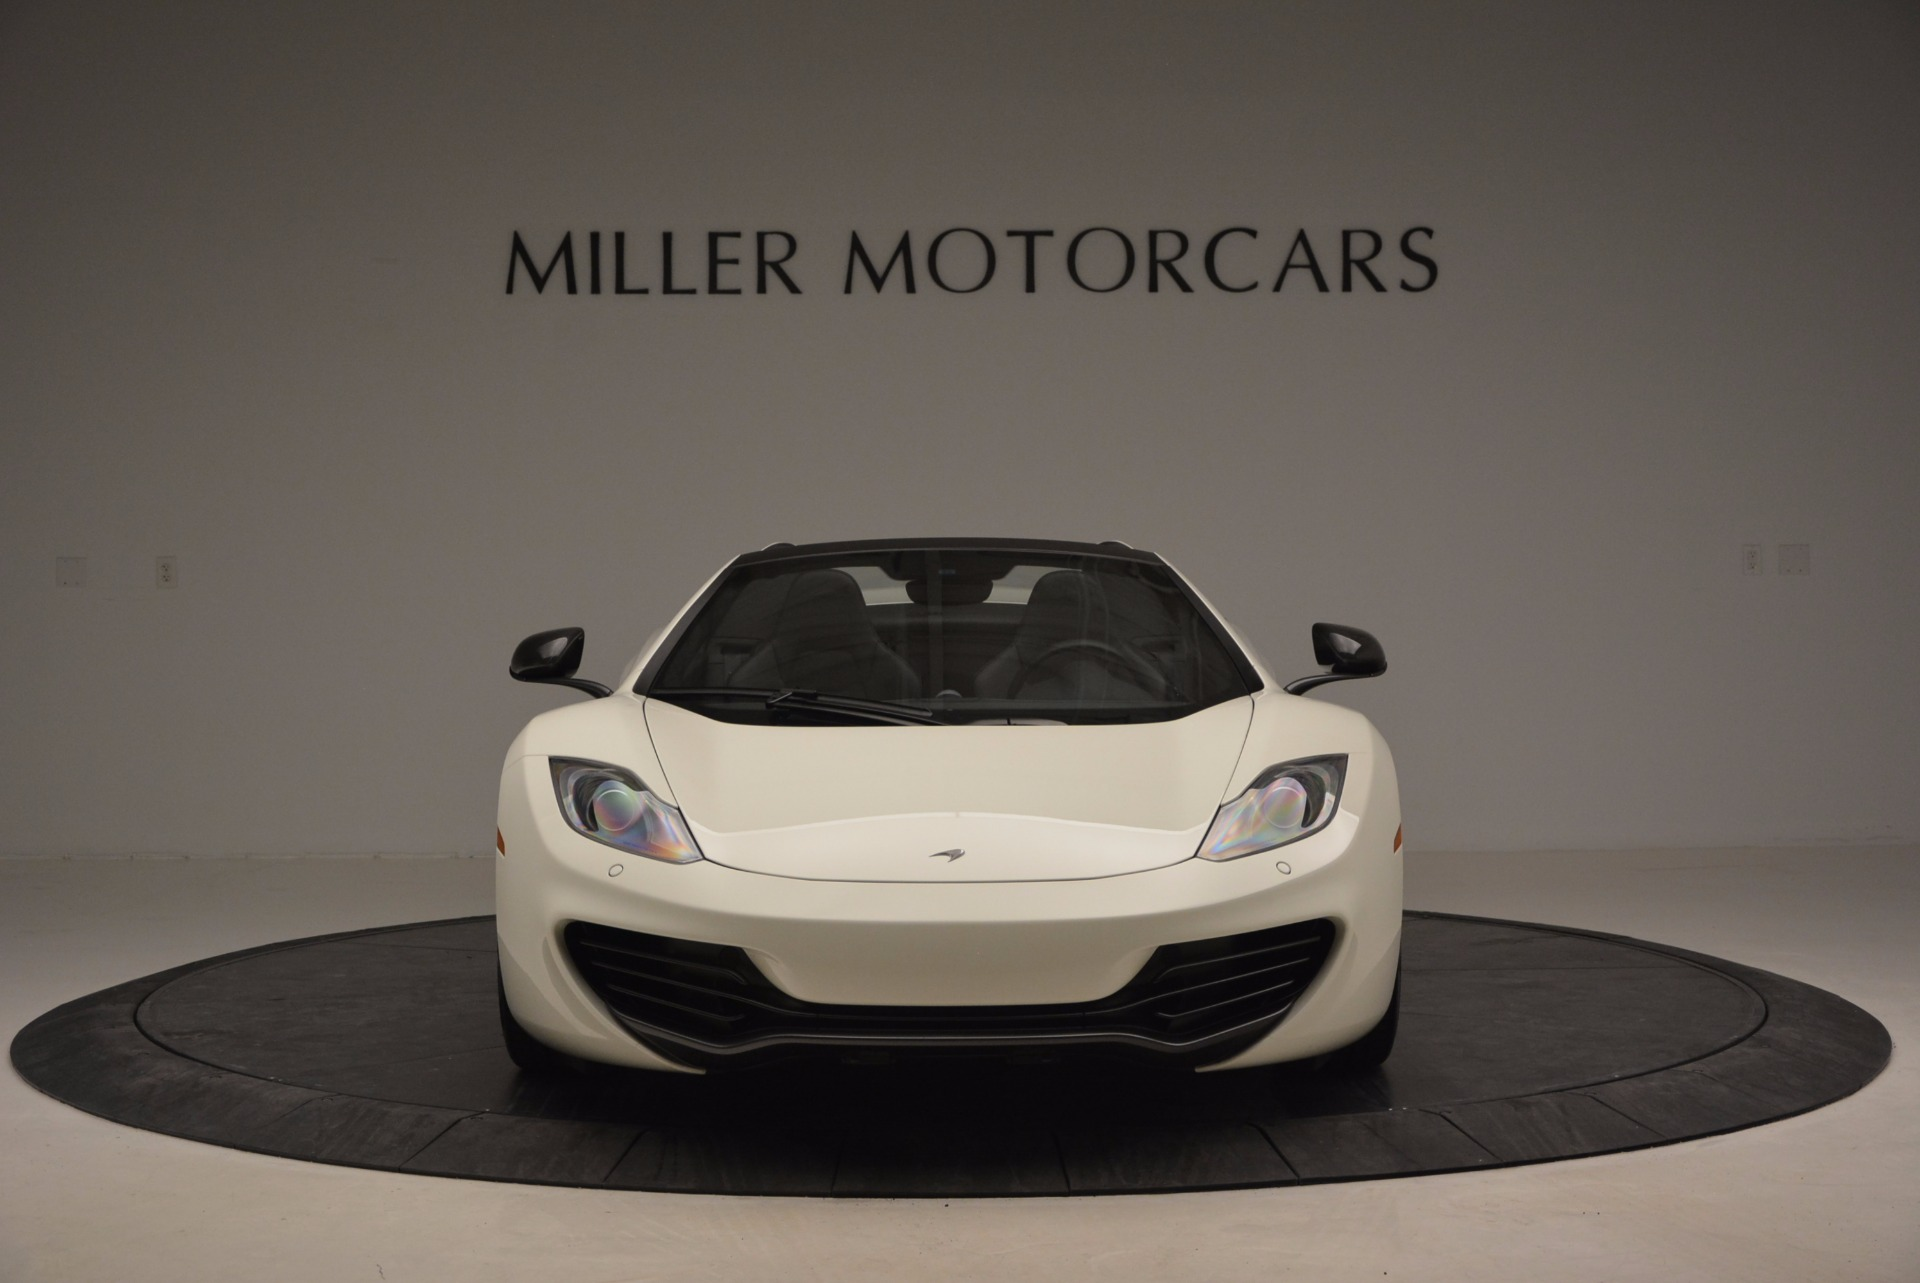 Used 2014 McLaren MP4-12C Spider For Sale In Greenwich, CT. Alfa Romeo of Greenwich, 3136 908_p12